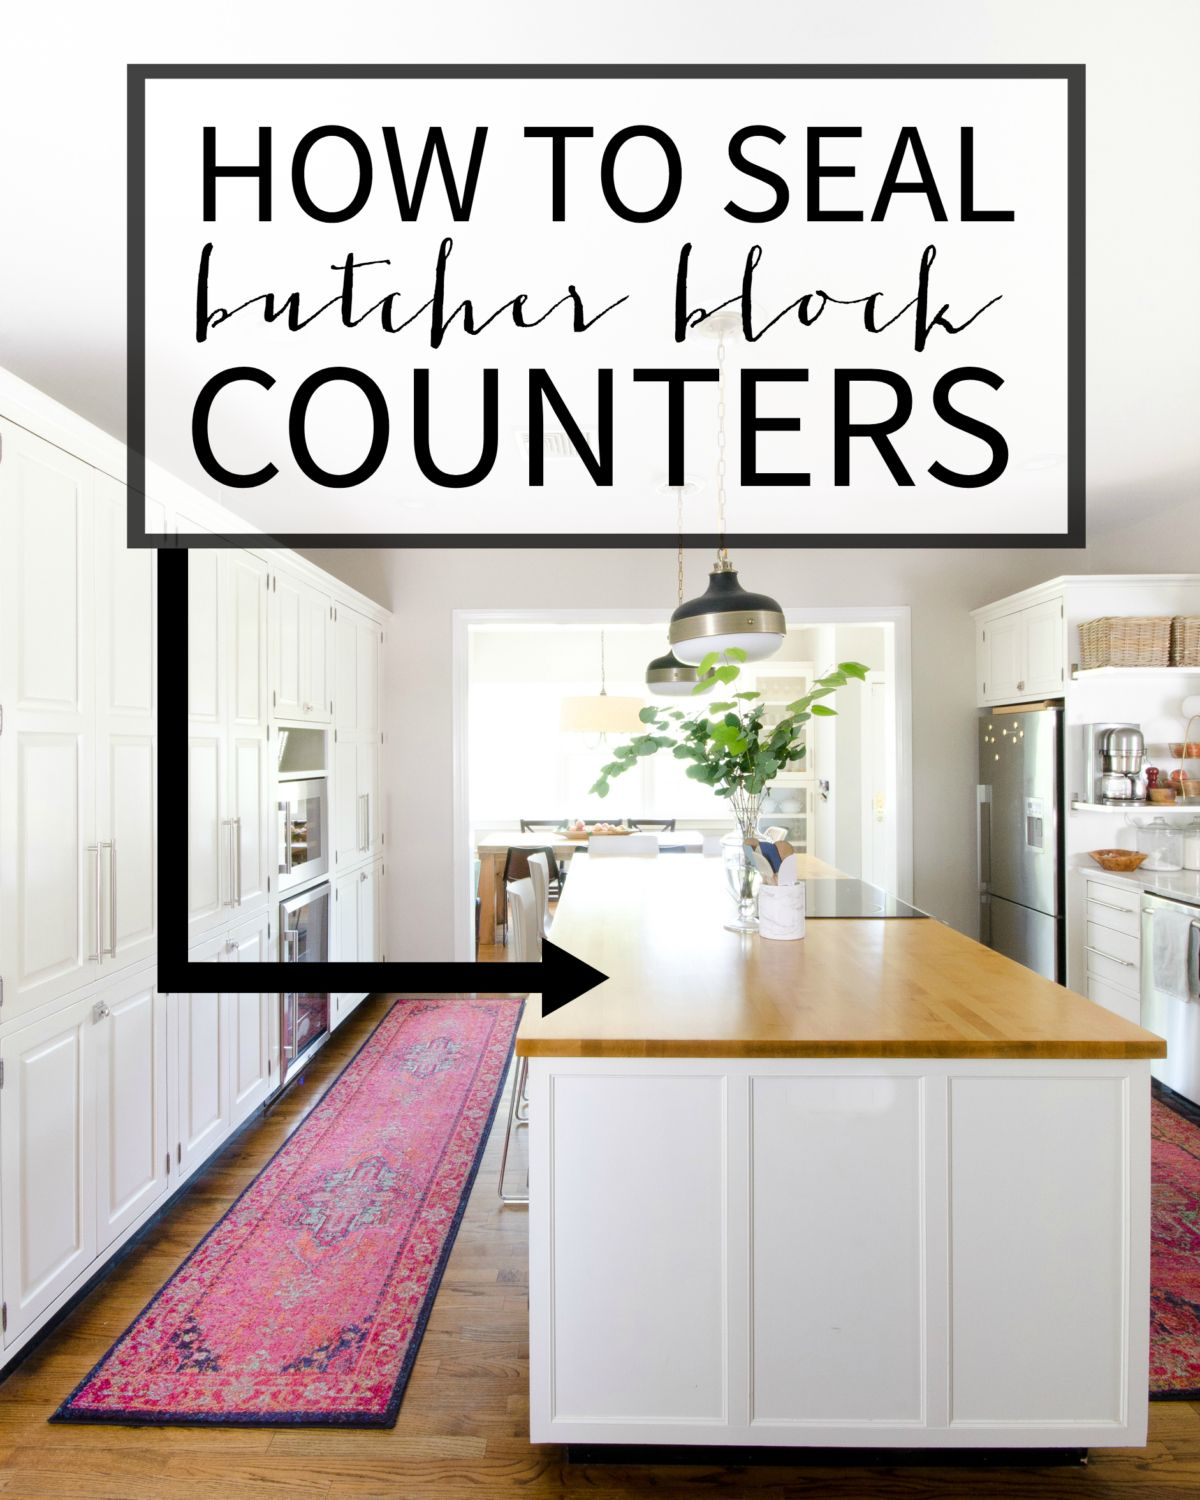 How to Seal Butcher Block Counters The Chronicles of